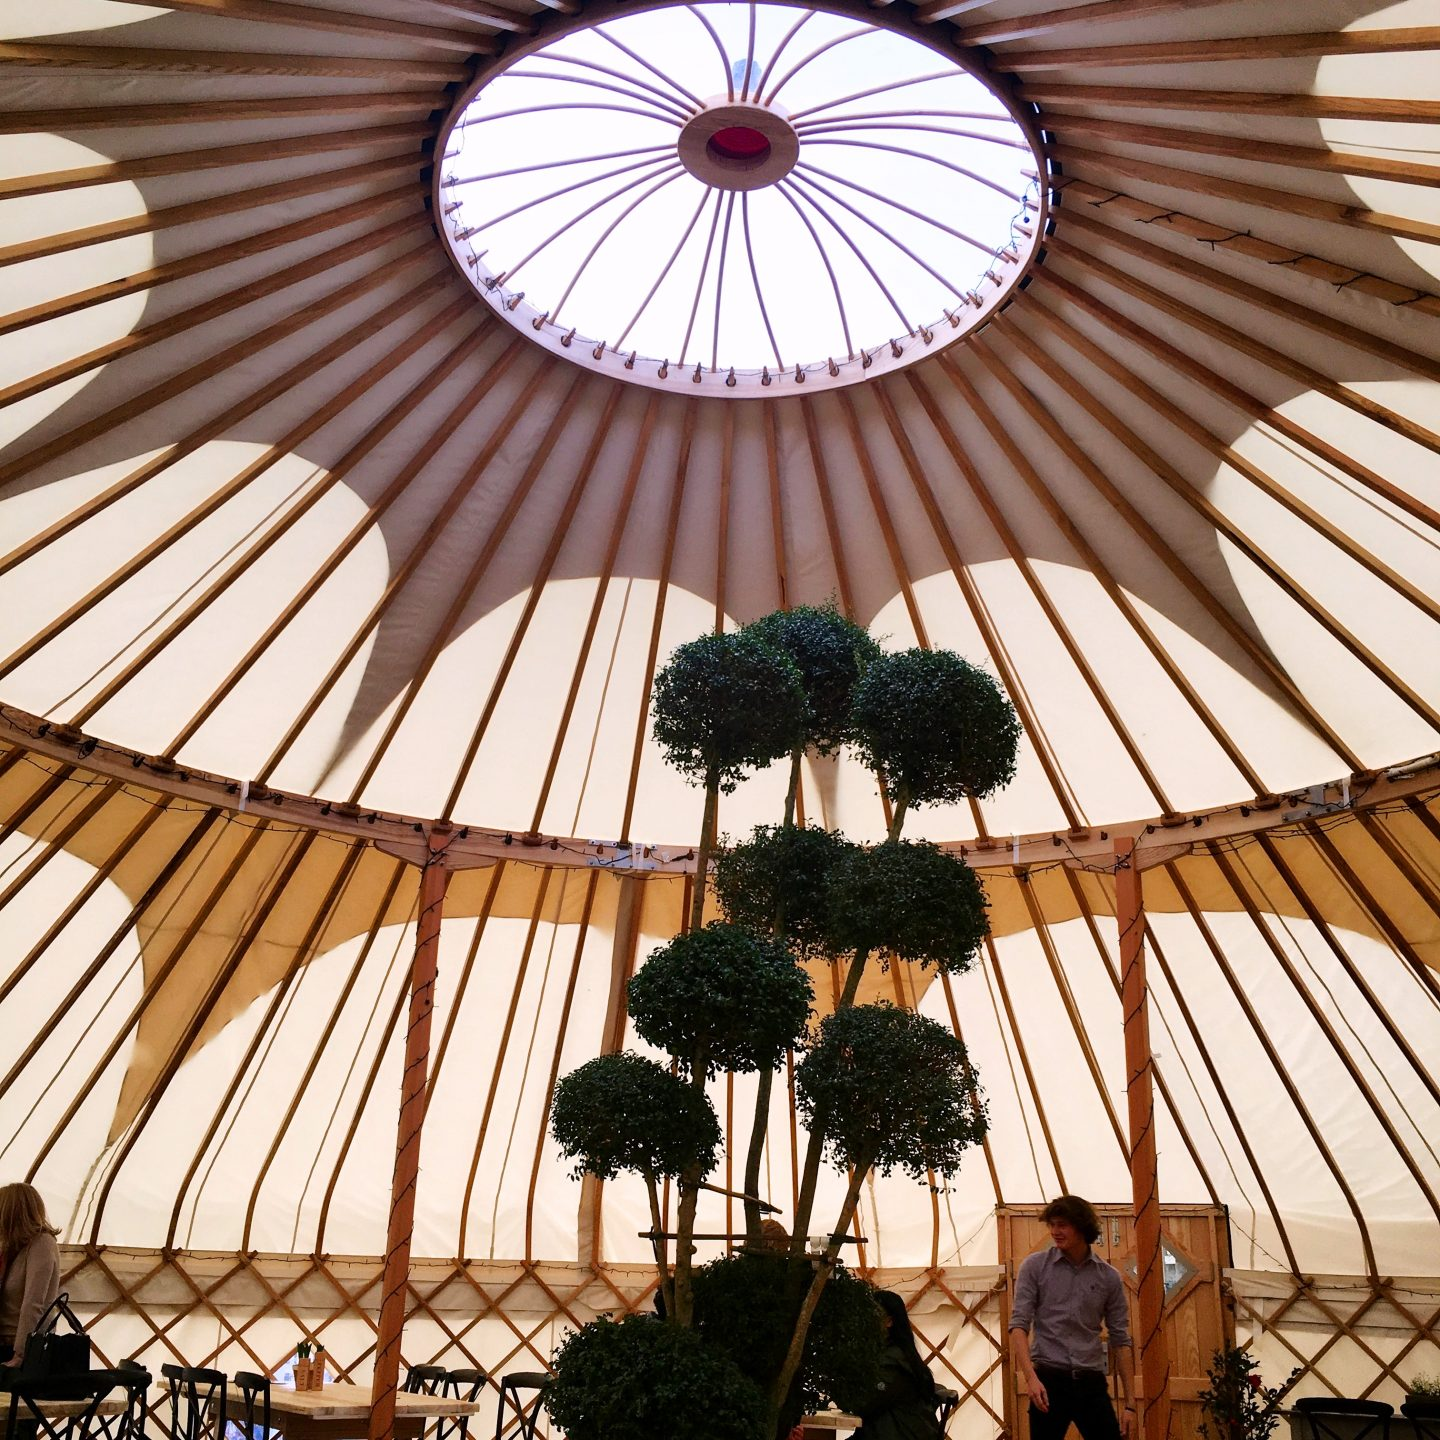 Almost-Alfresco Lunching: The Yurt at Nicholsons